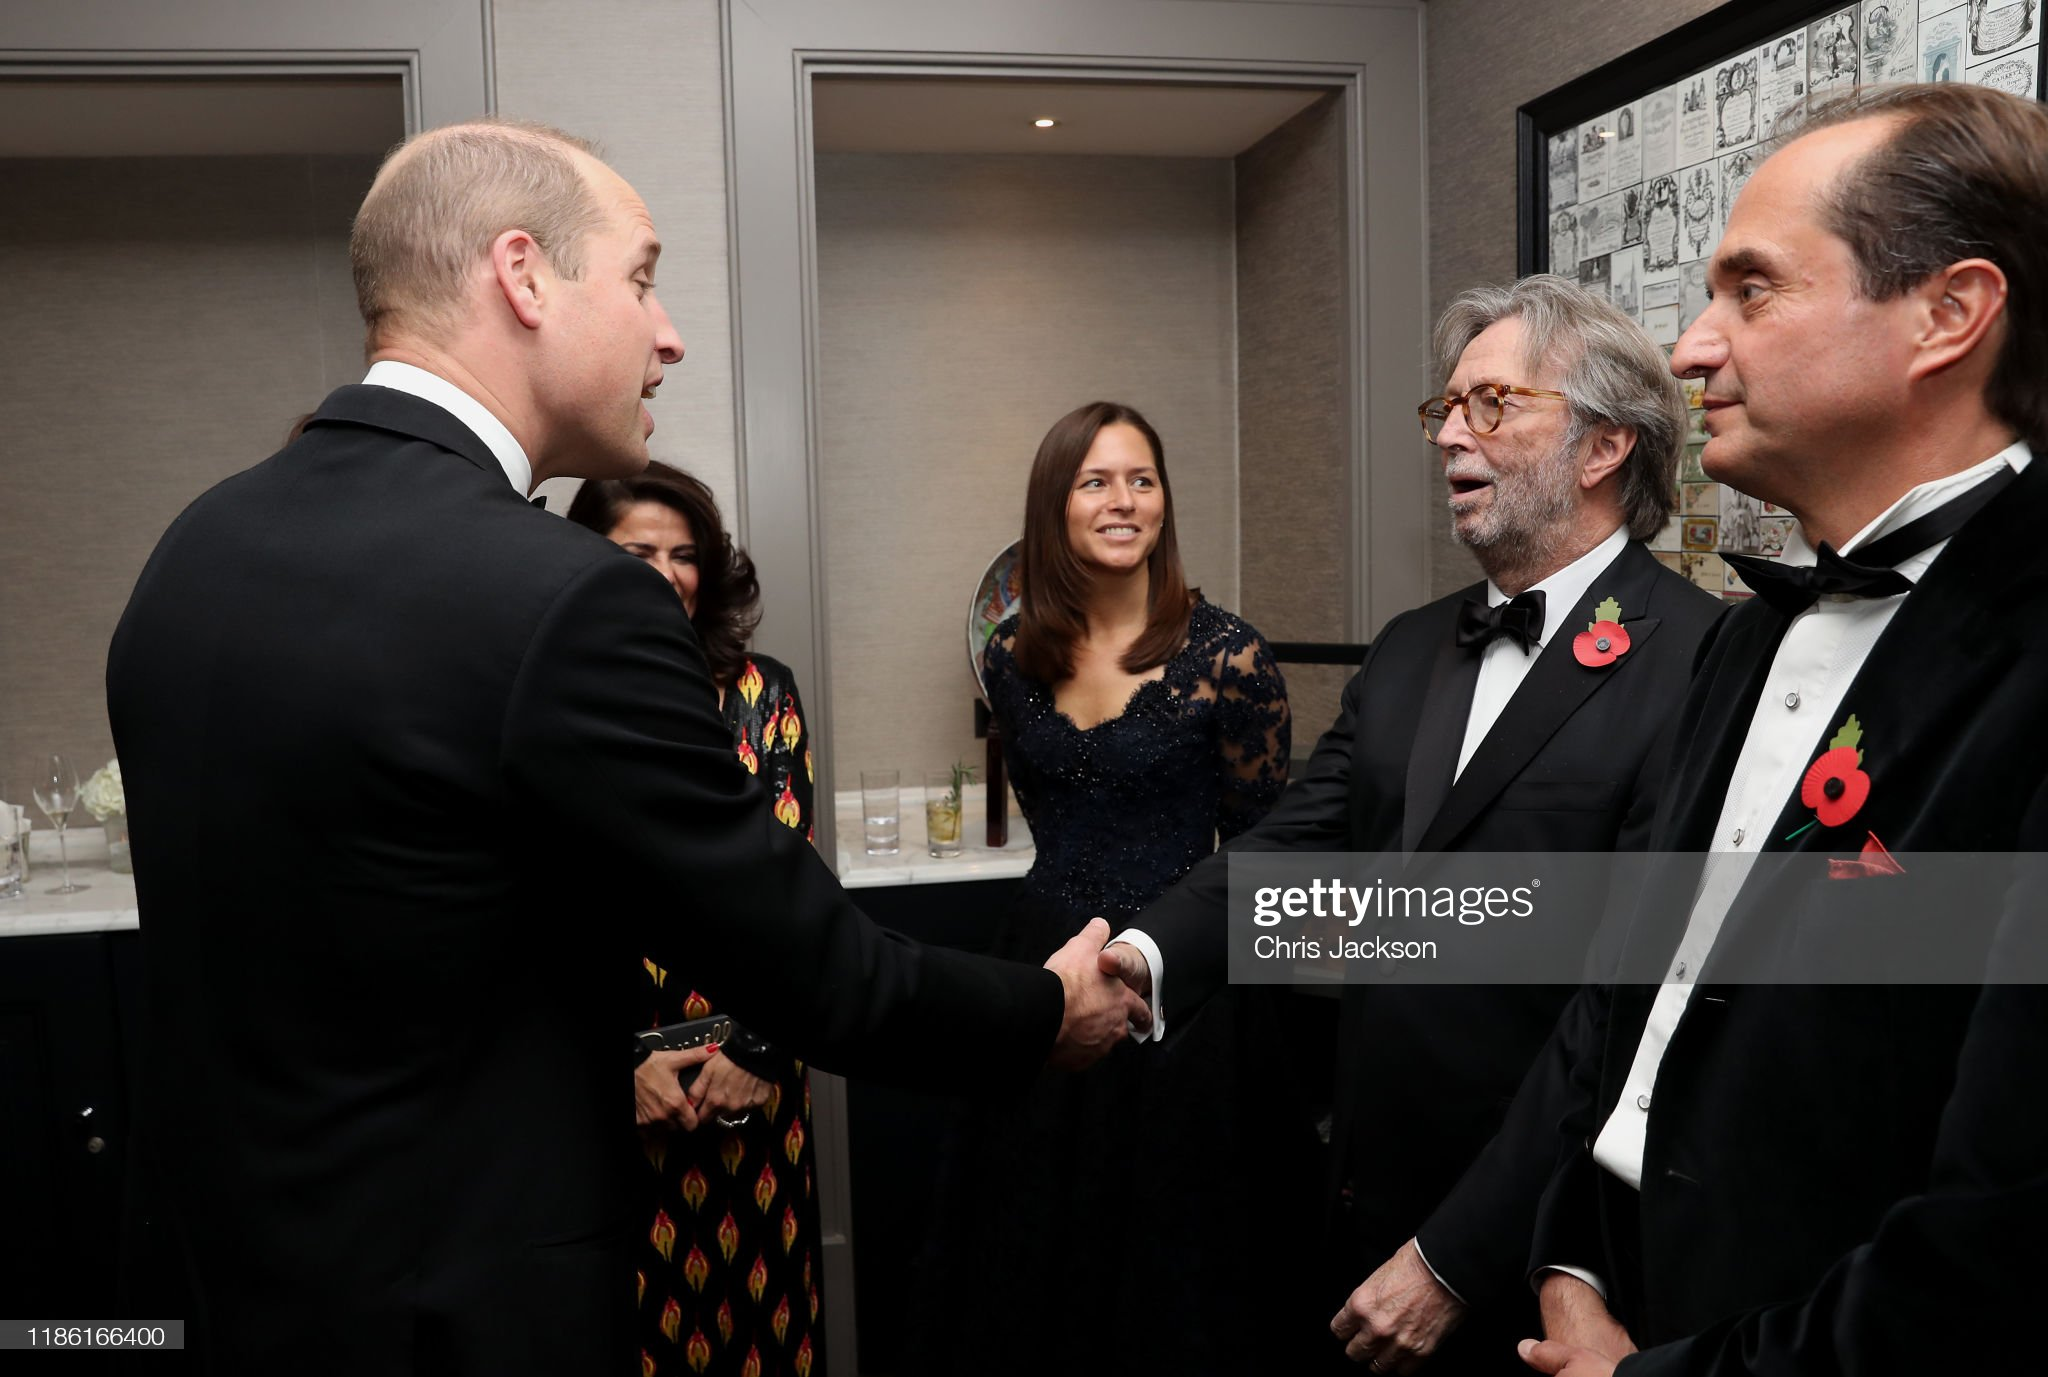 prince-william-duke-of-cambridge-with-eric-clapton-and-guests-as-he-picture-id1186166400